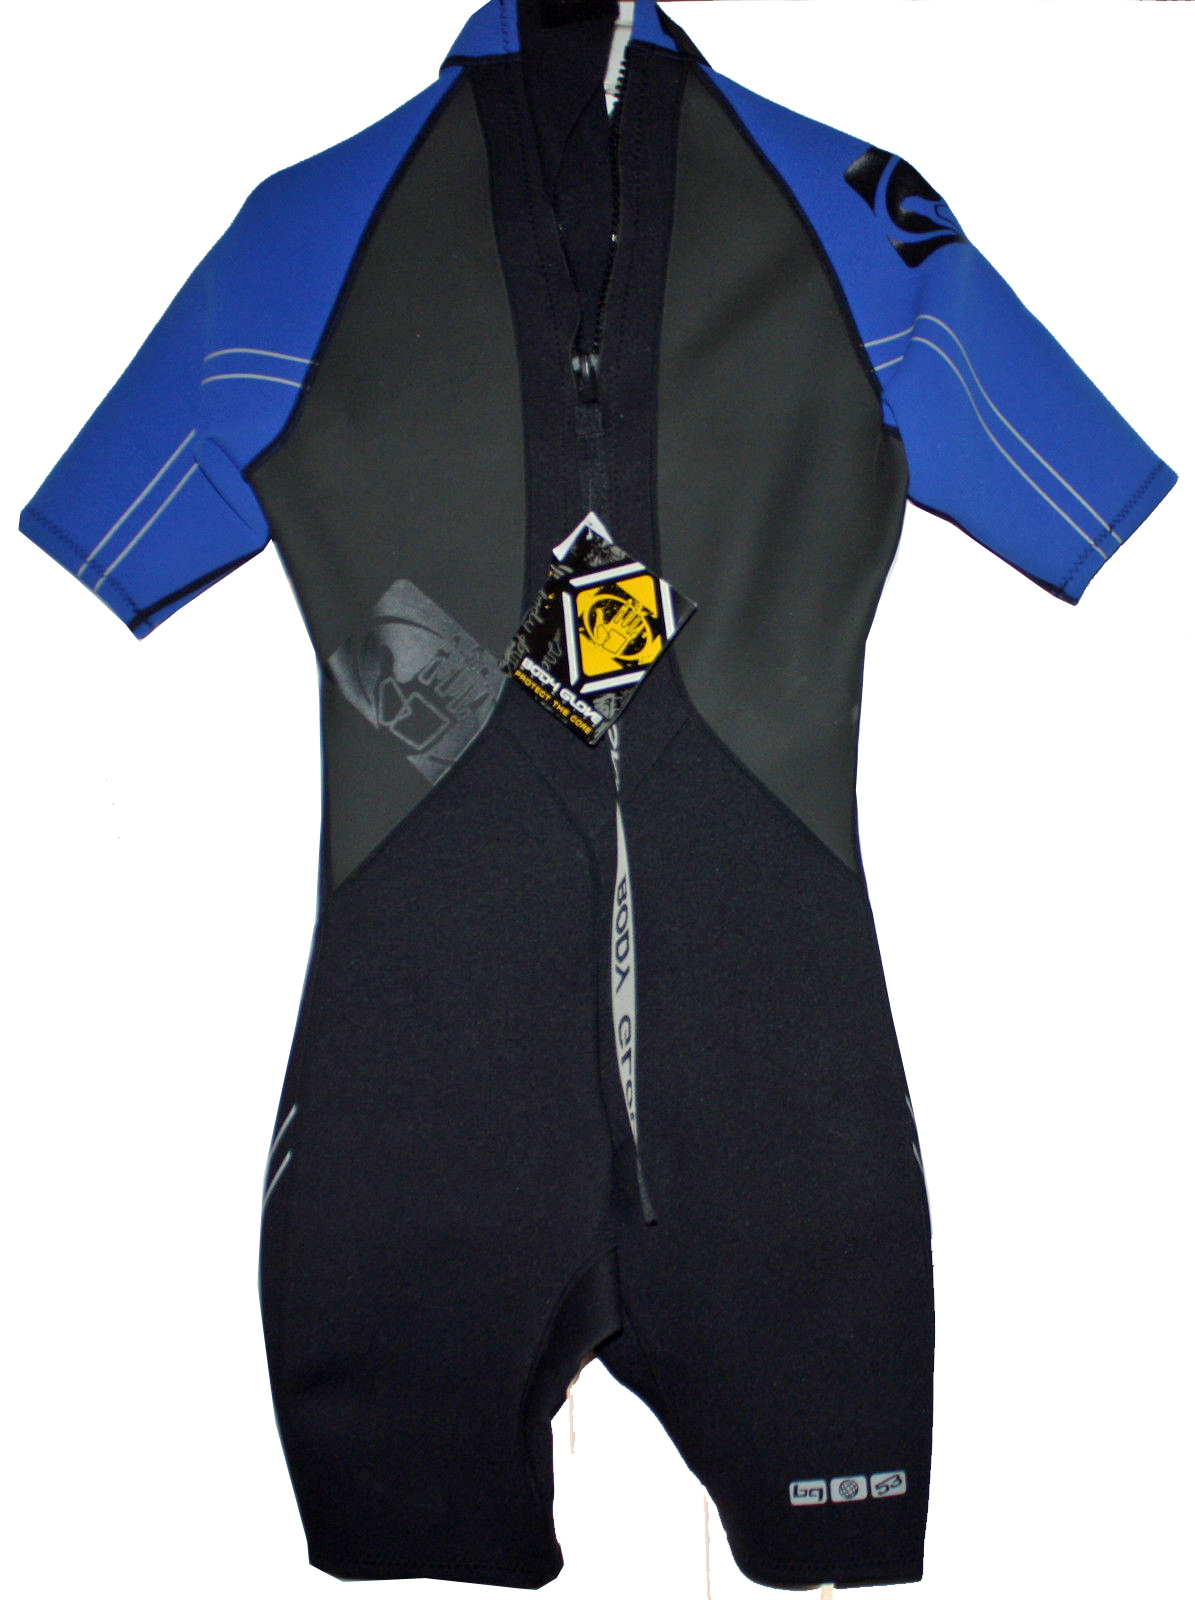 Body Glove Men's PRO 2 Blue/Black/Gray 2/1 mm Shorty Springsuit Wetsuit (Small)